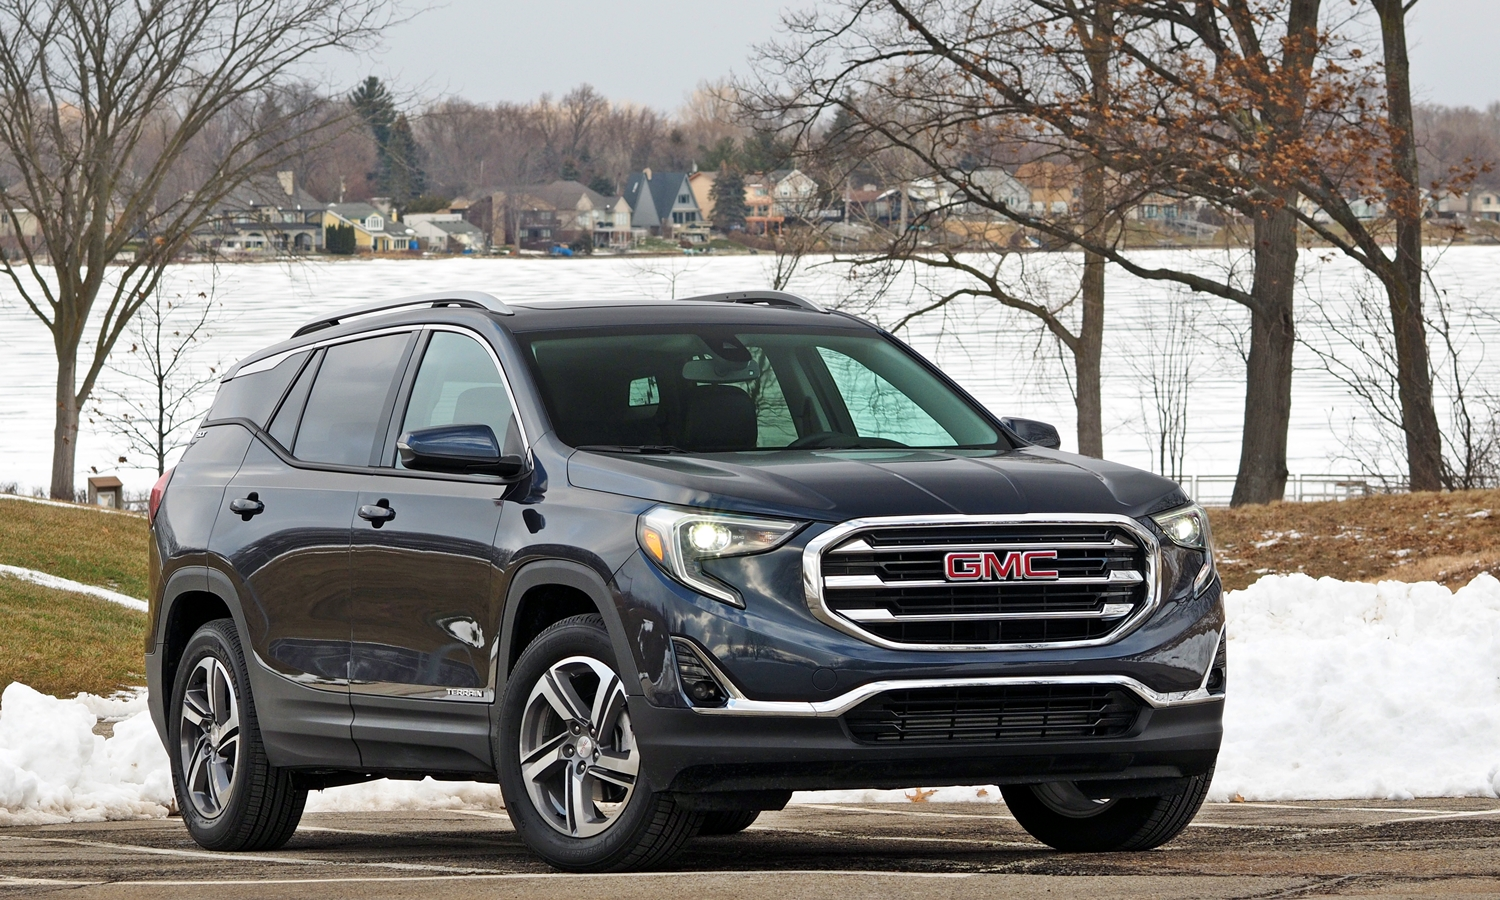 2018 GMC Terrain front quarter view